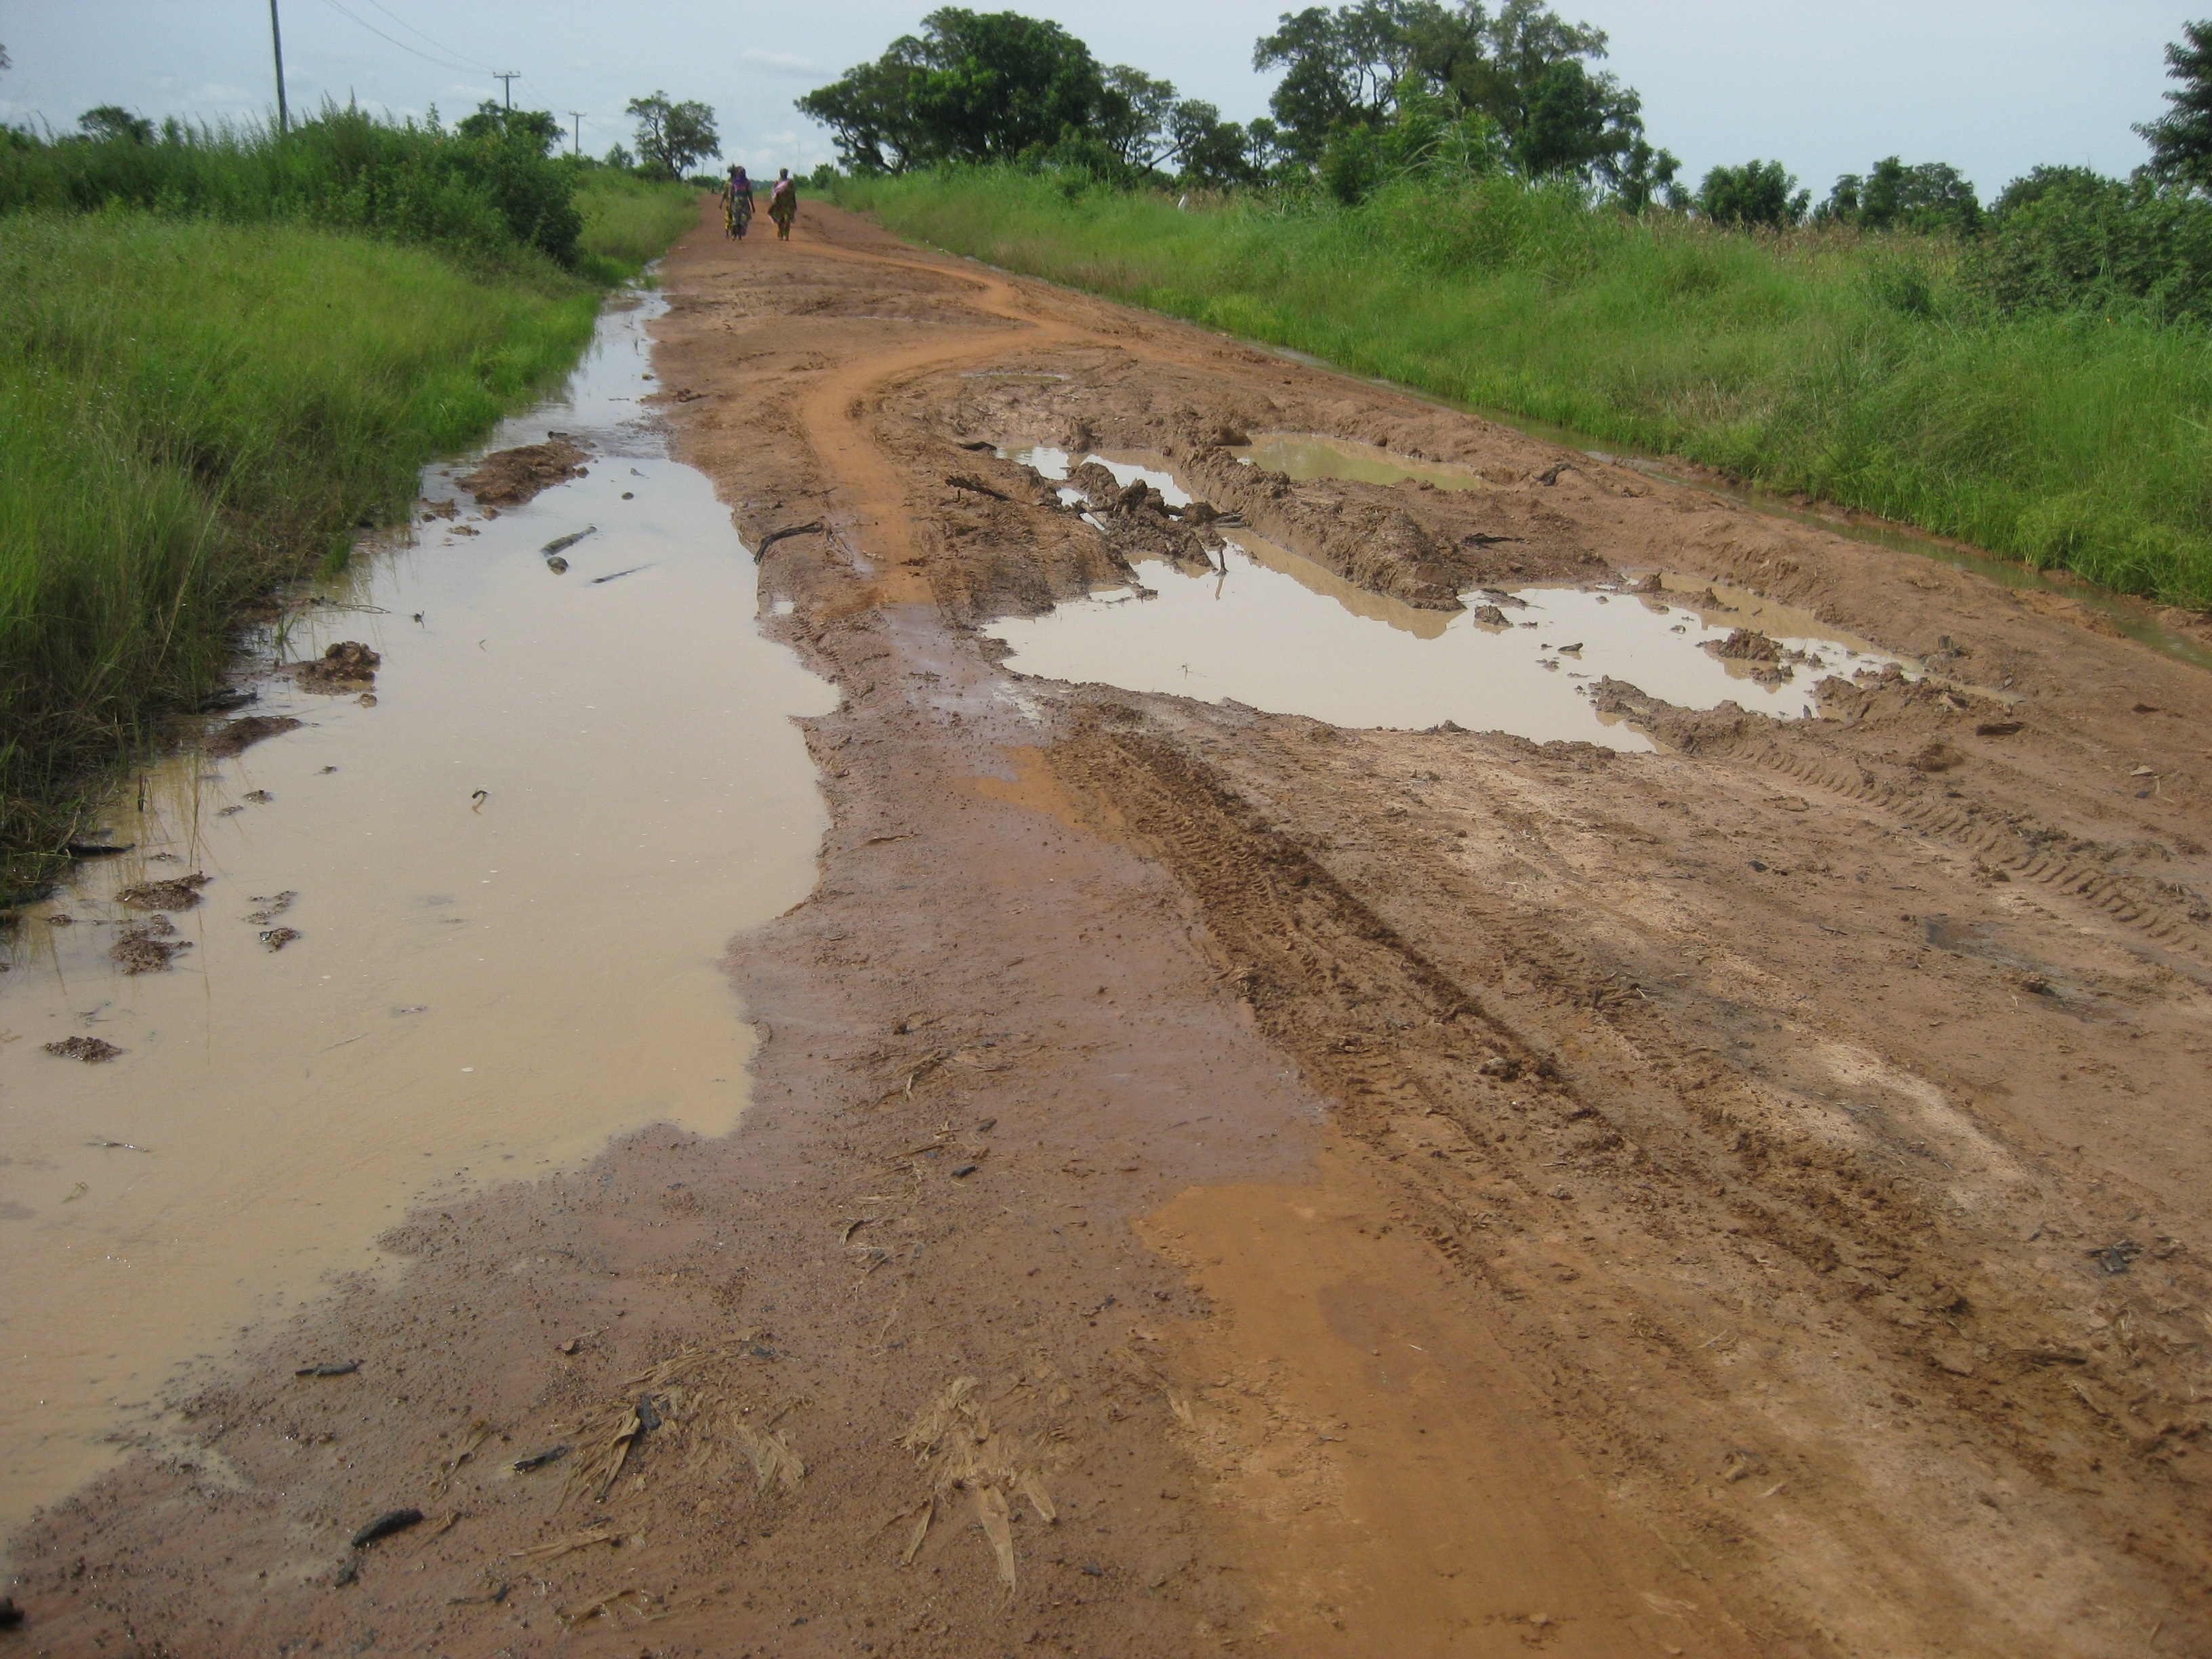 typical road, a couple days after a rain storm